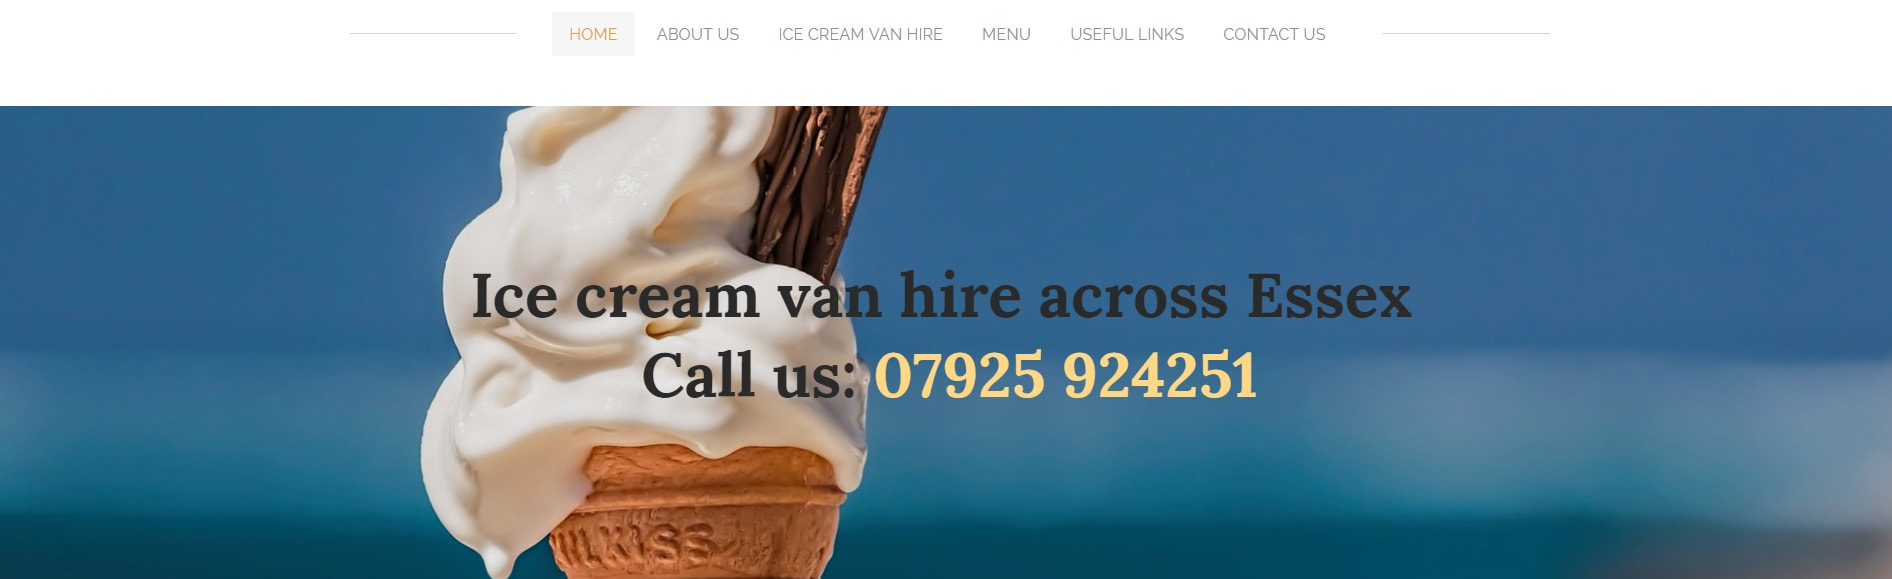 Home page for Carly's Ice Cream Vans